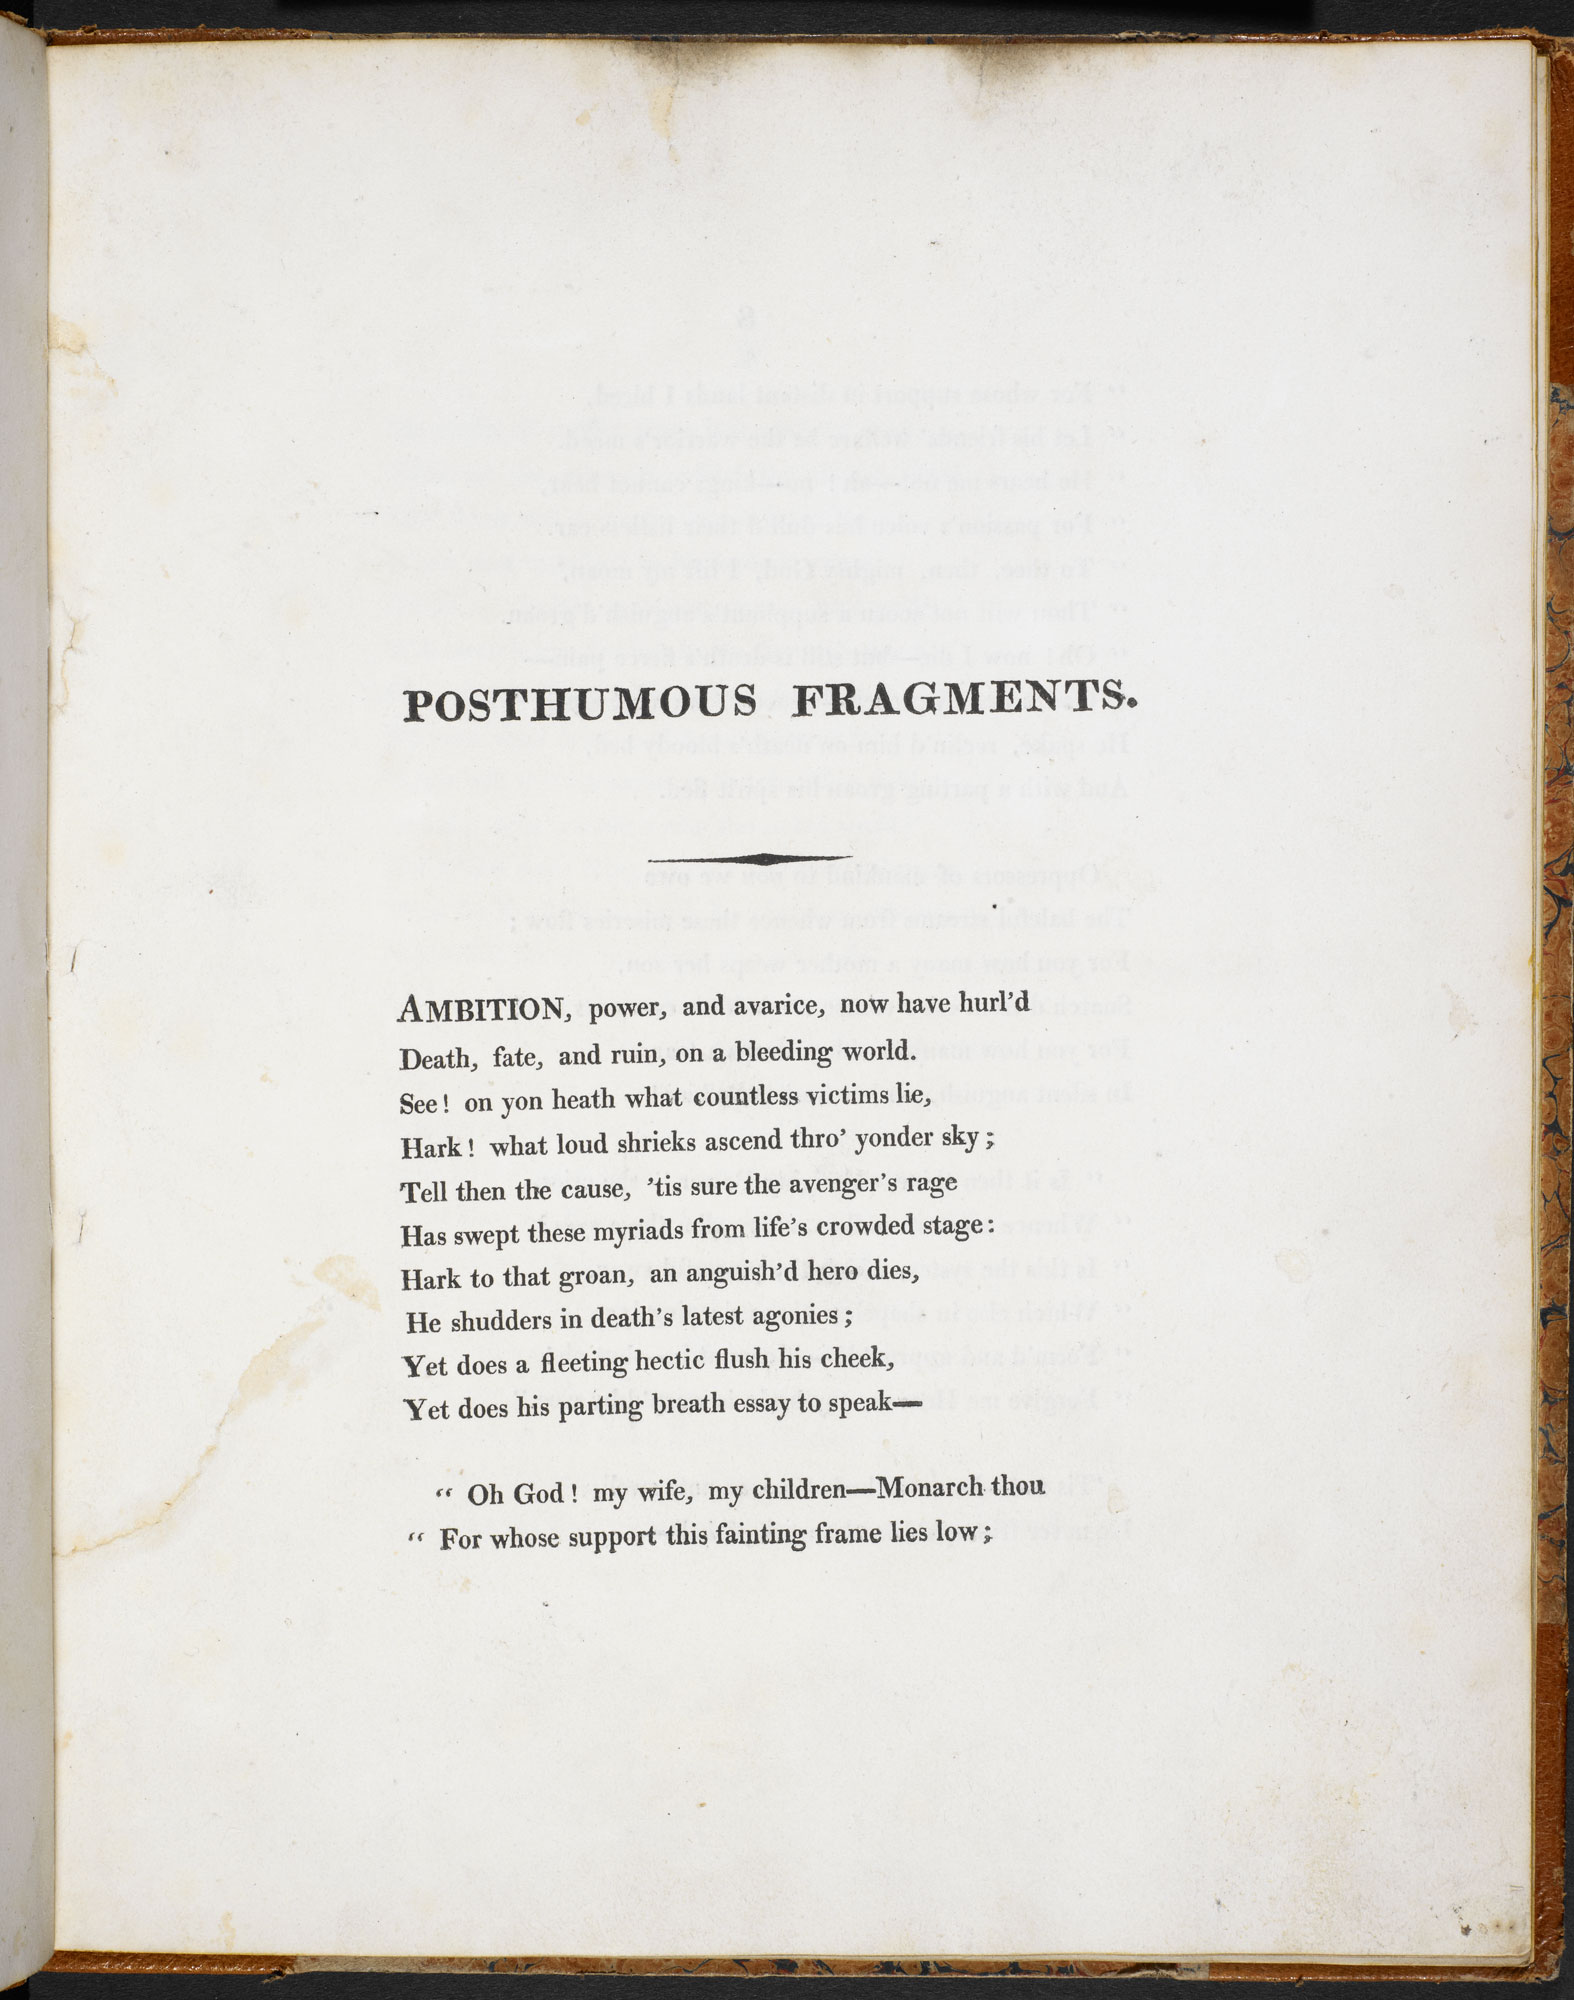 Posthumous Fragments of Margaret Nicholson by Percy Bysshe Shelley and Thomas Jefferson Hogg [page: 7]